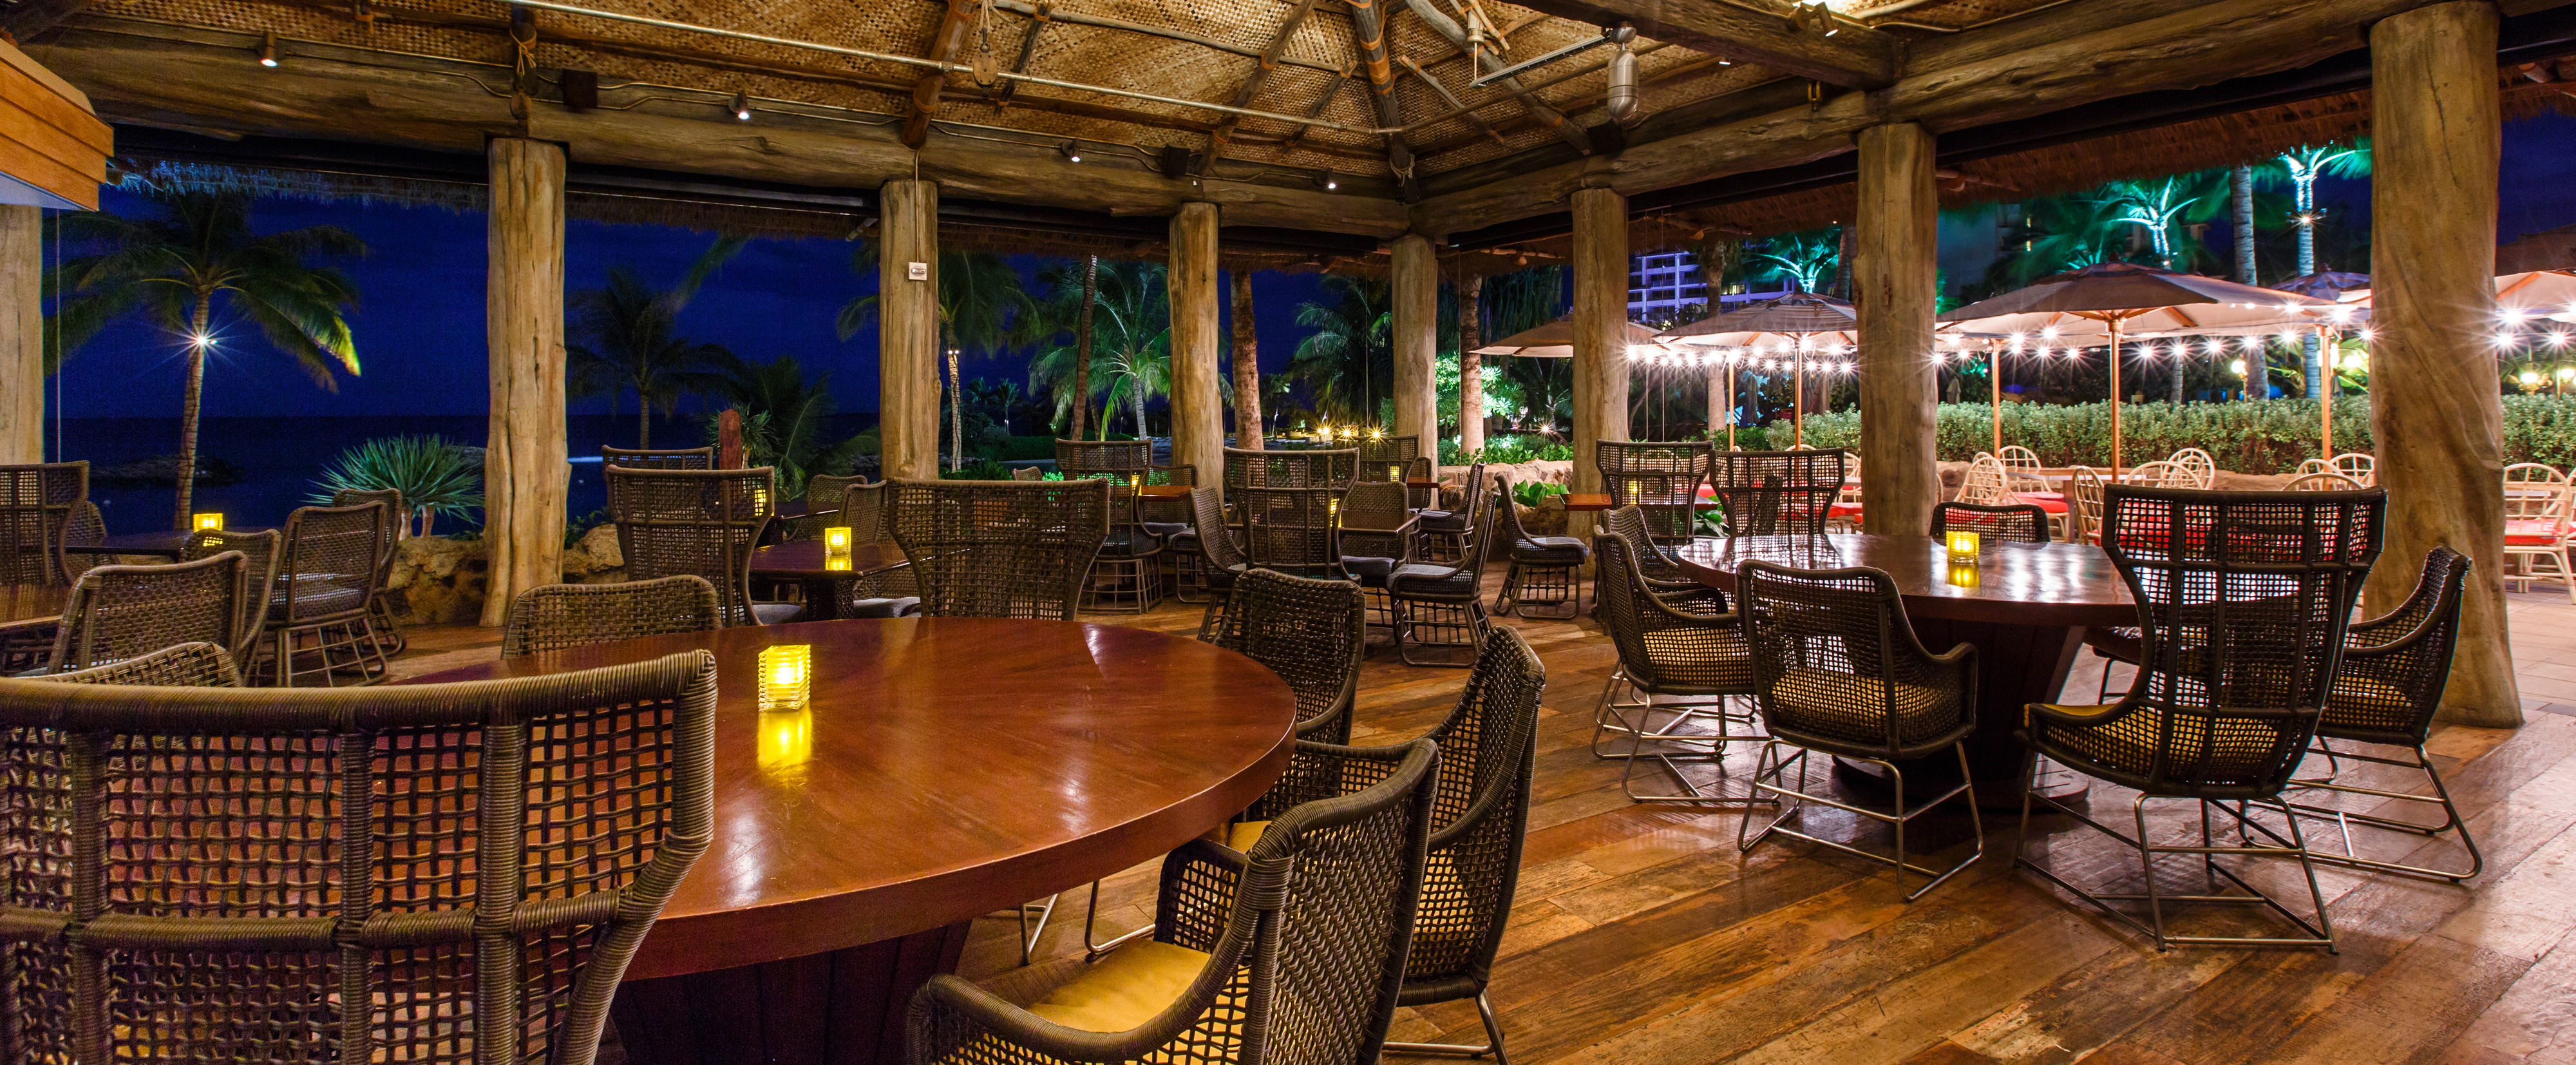 Fancy Restaurant Background amaama hawaiian cuisine restaurant | aulani hawaii resort & spa